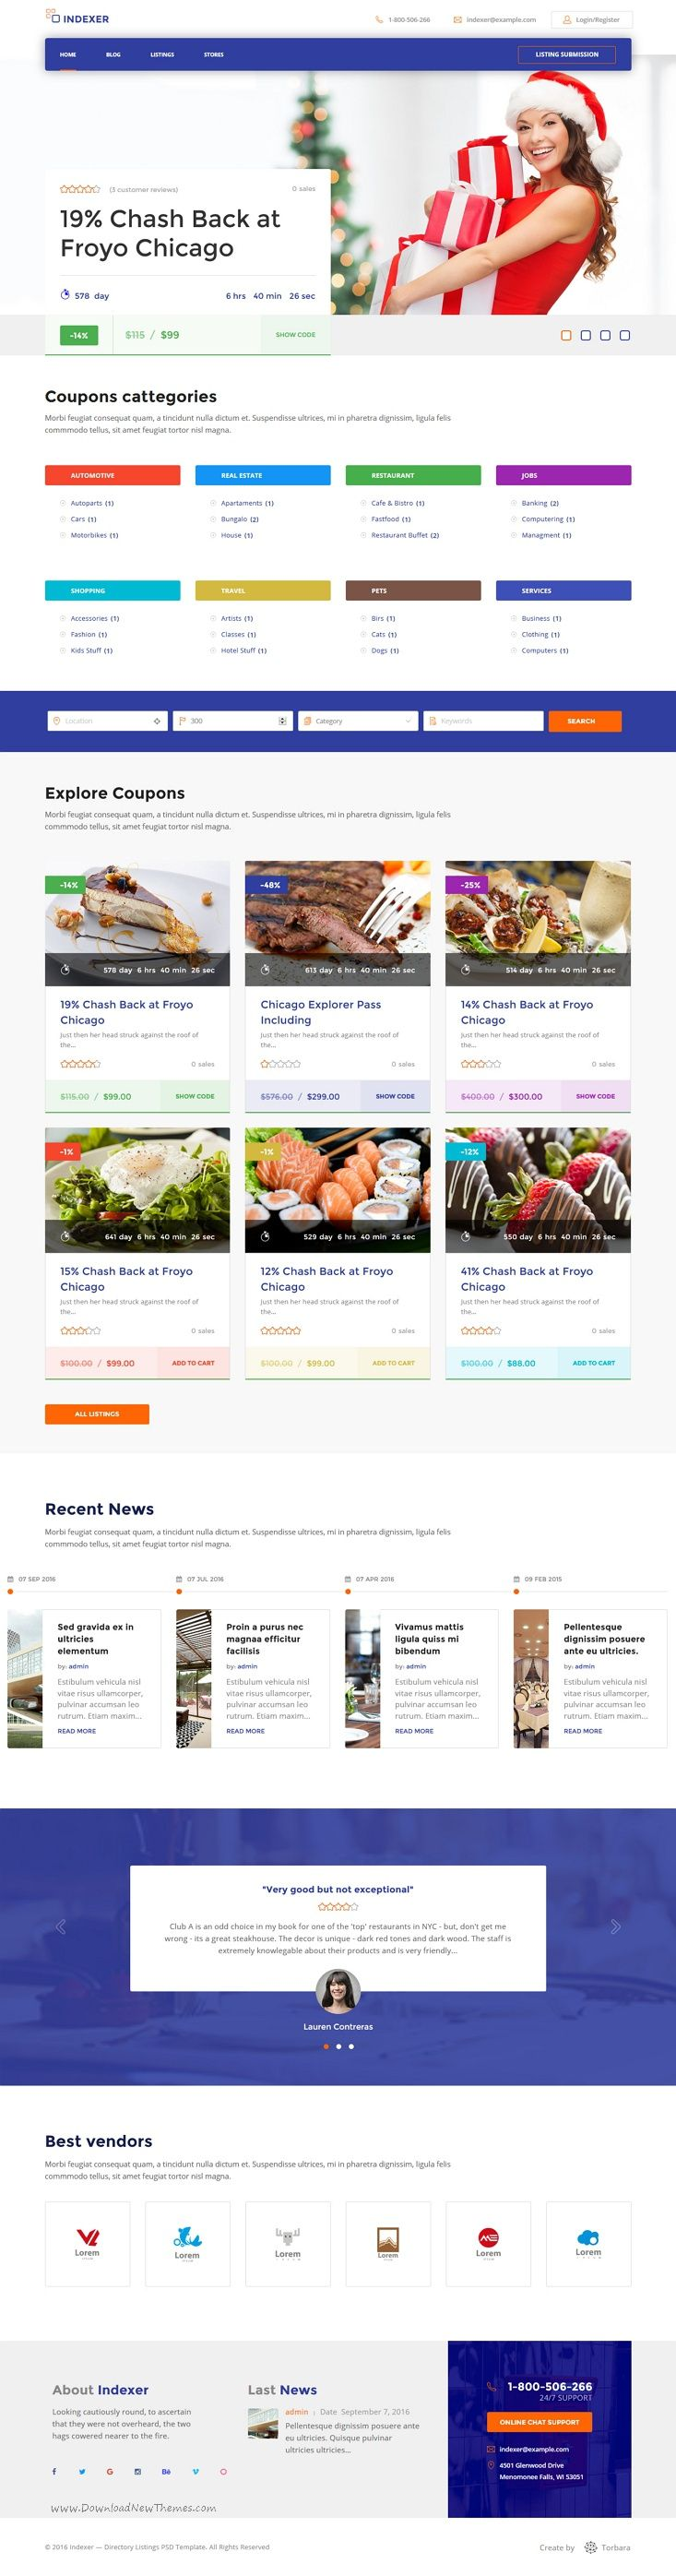 Indexer is a multipurpose #WordPress #Directory & #Listing Template and it best suitable for #Coupons & Discounts website download now➩ https://themeforest.net/item/multipurpose-listing-wordpress-theme-coupons-discounts-marketplace-indexer/17869108?ref=Datasata